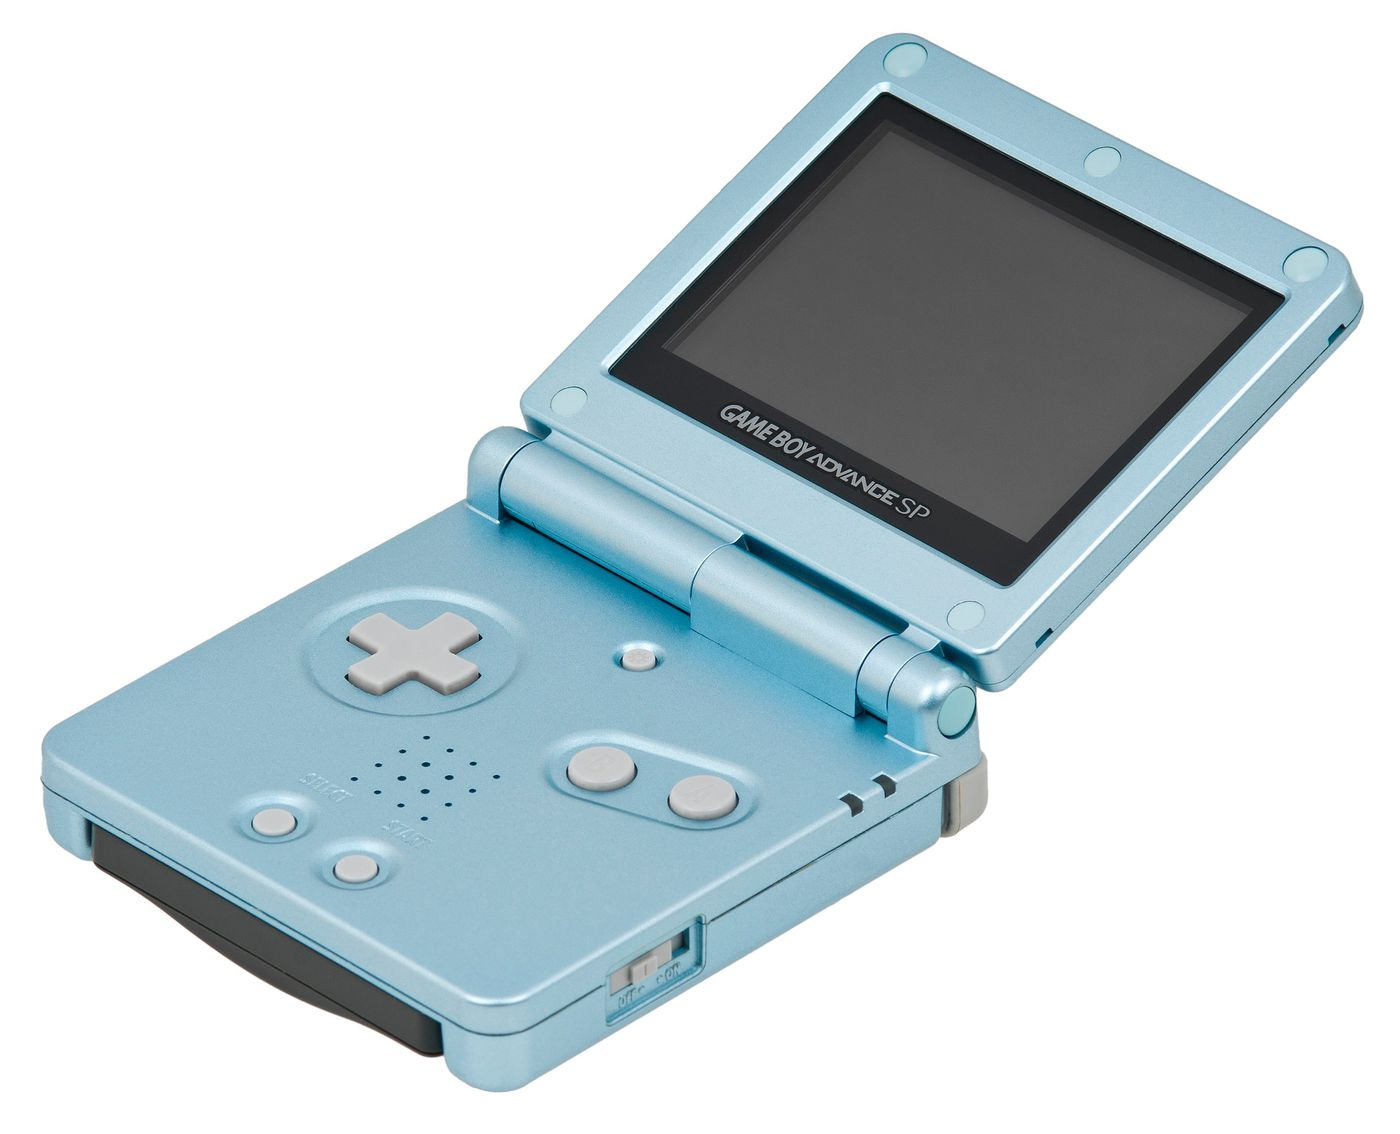 Nintendo Switch Lite is the latest in a long list of cut-down